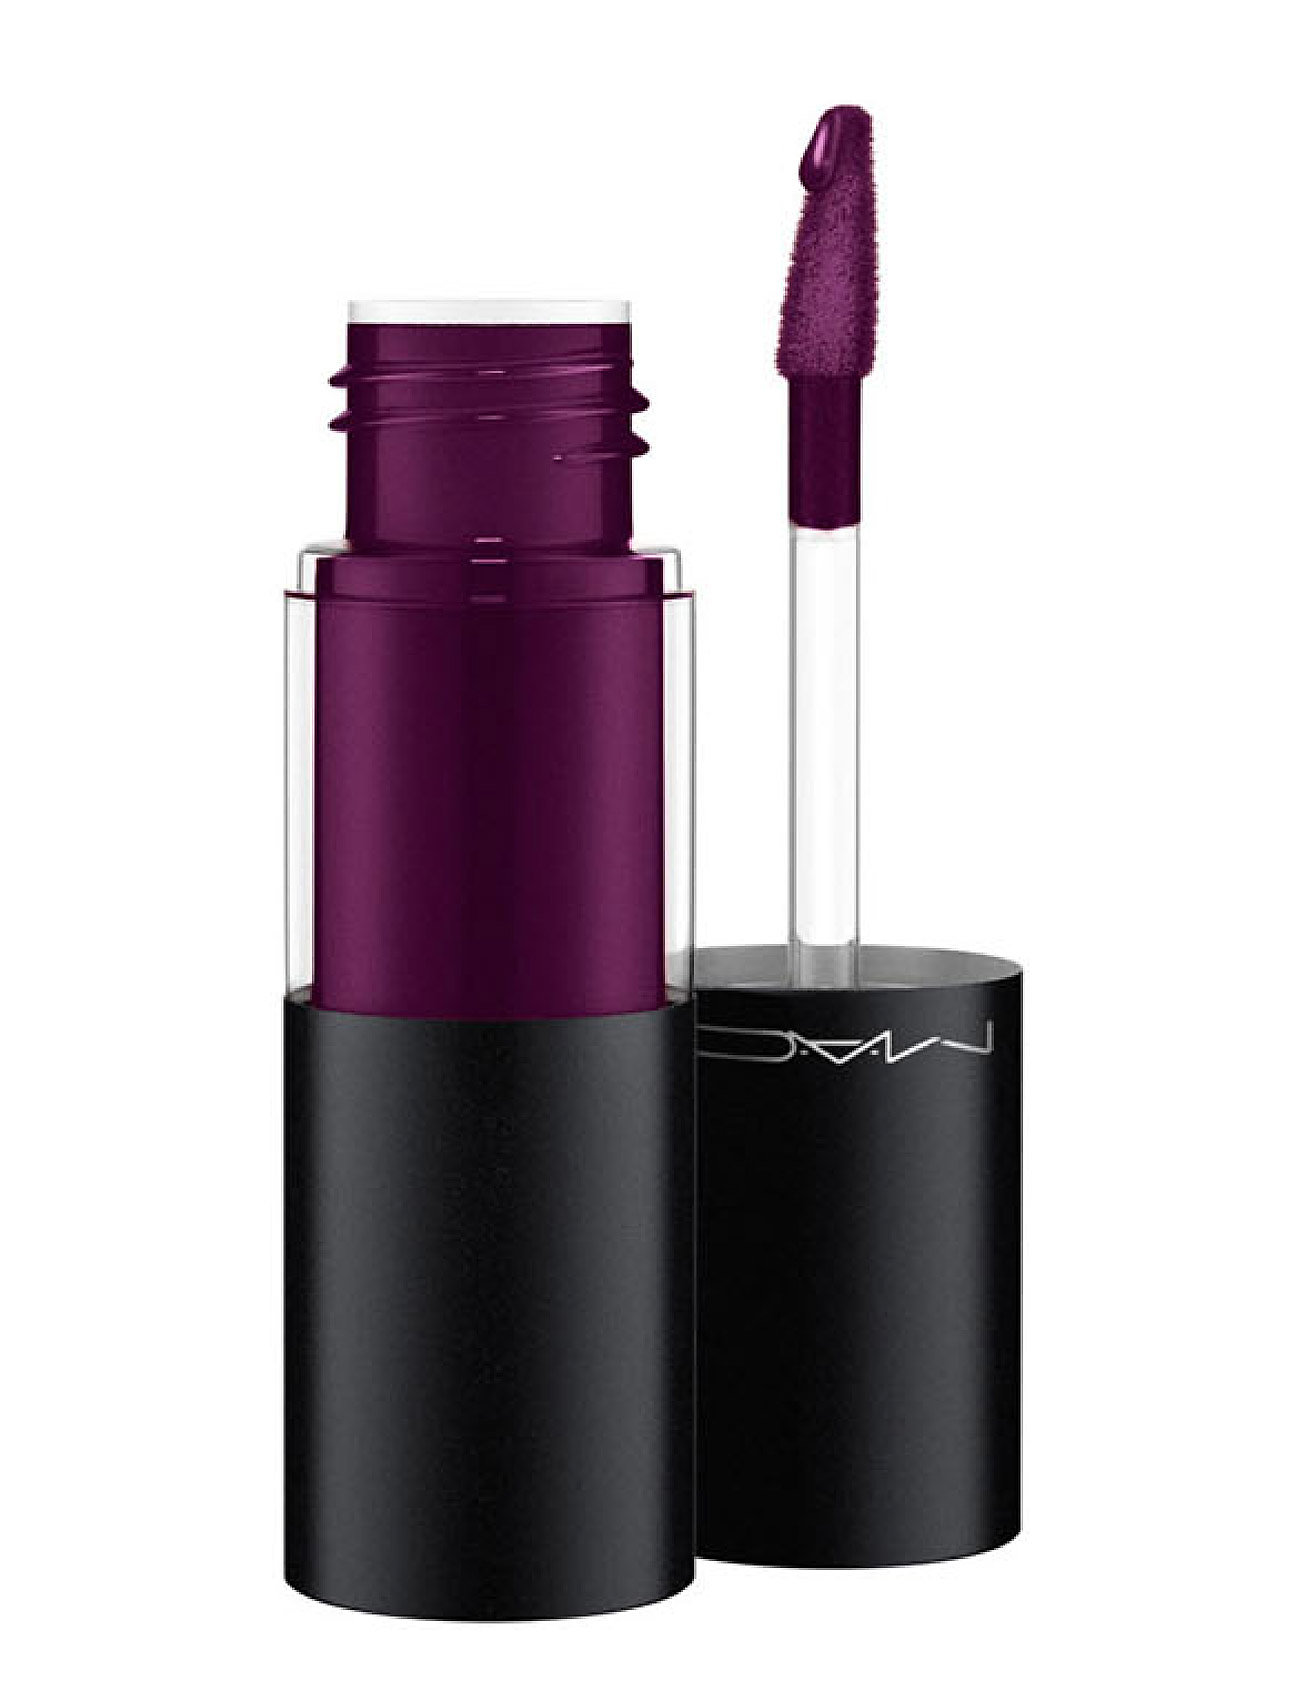 Image of Versicolour Perpetual Holiday Beauty WOMEN Makeup Lips Lilla M.A.C. (3067513089)